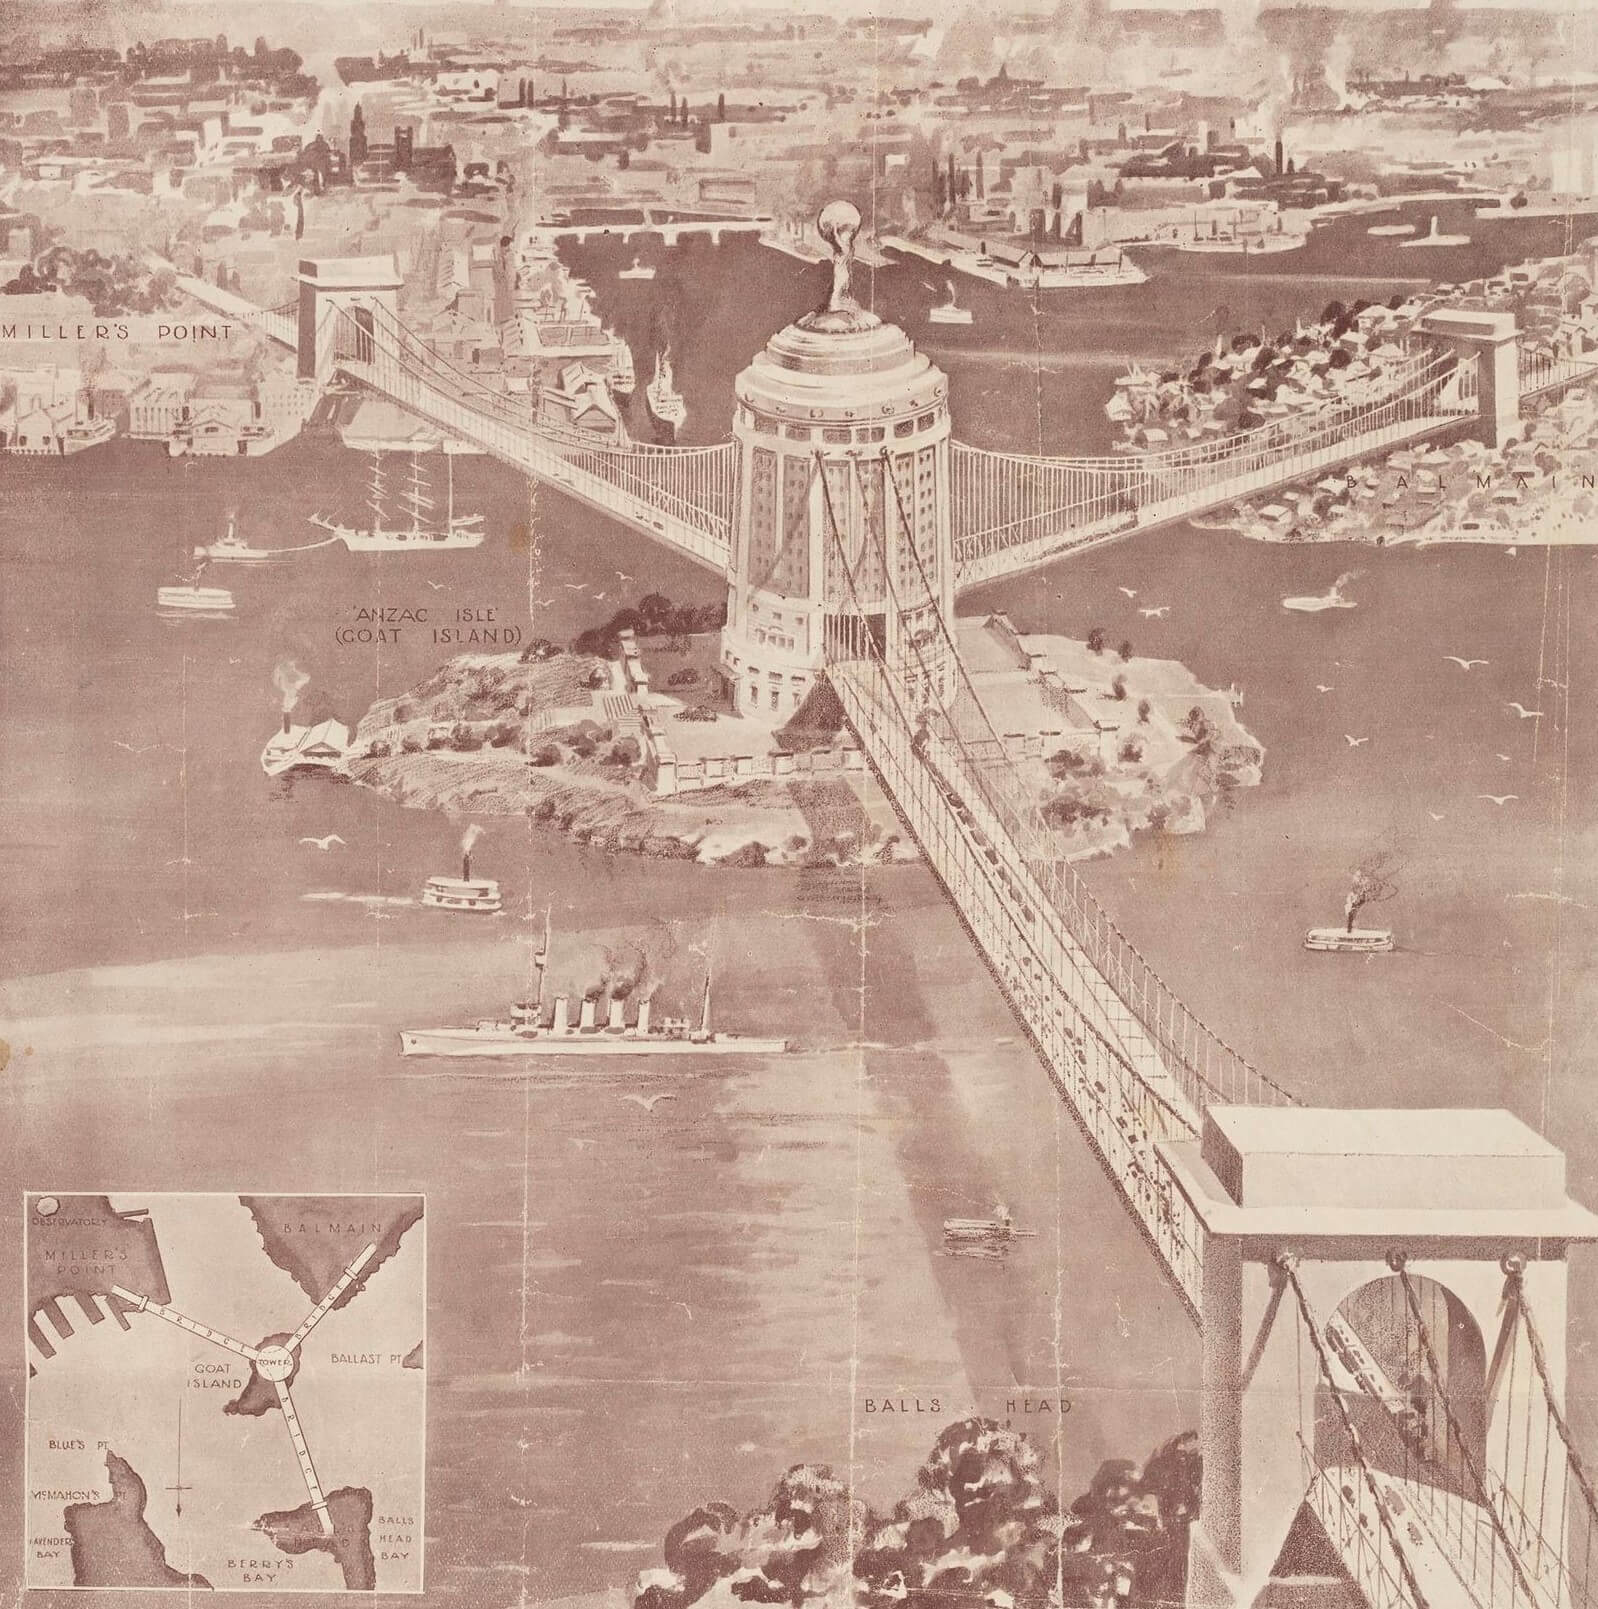 Sydney Harbour Bridge by Ernest Stowe, 1922 Design drawing from Cuttings mainly regarding suggestions for a second harbour bridge in Sydney, MLMSS 1381/Box 2/Item 15